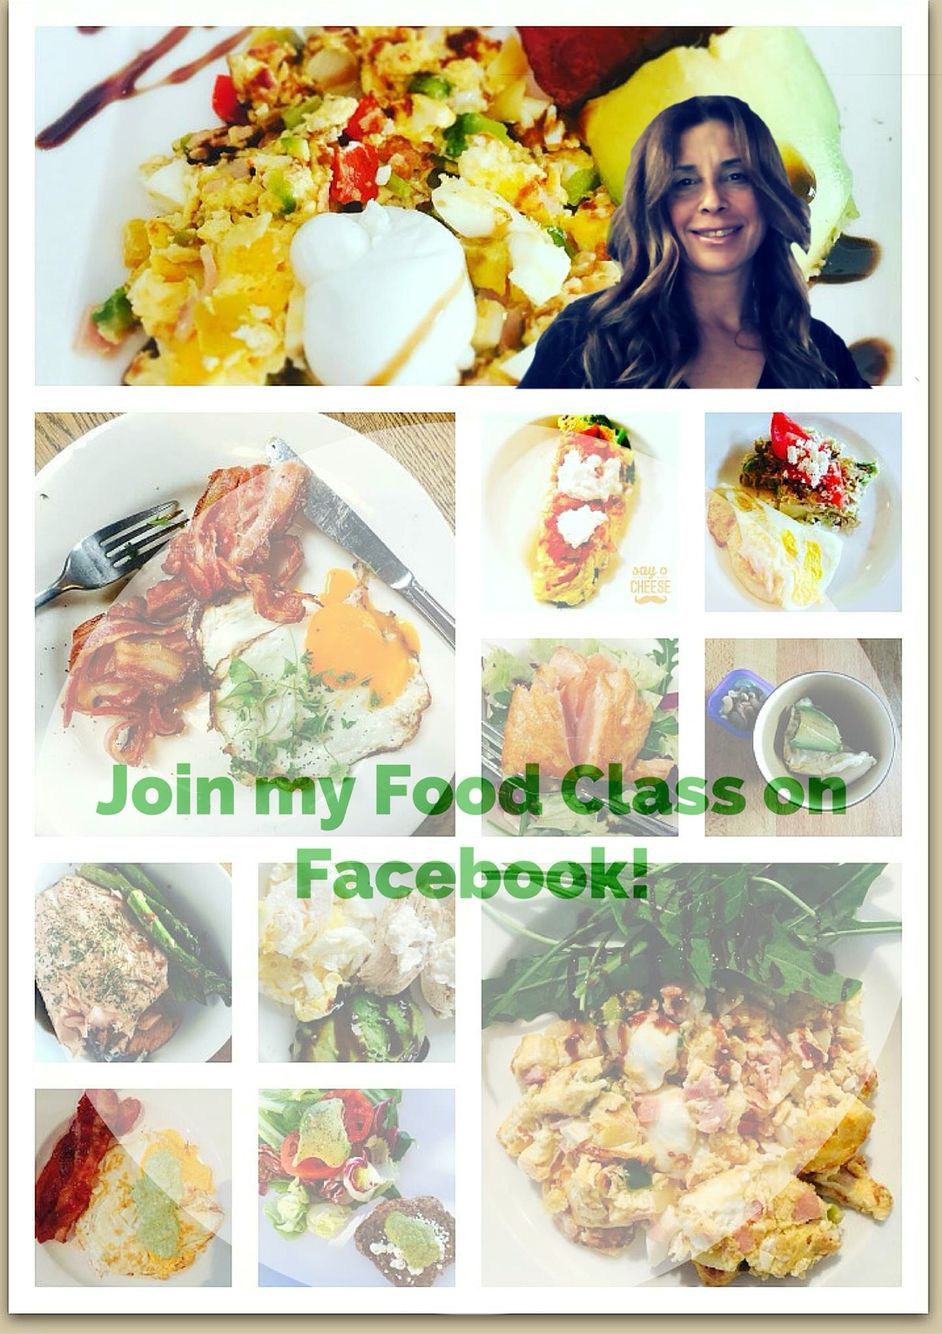 Join my Faceboo Food Class on Feb 22nd! Send me an email to marianaheaveyfitness@gmail.com to sign up!